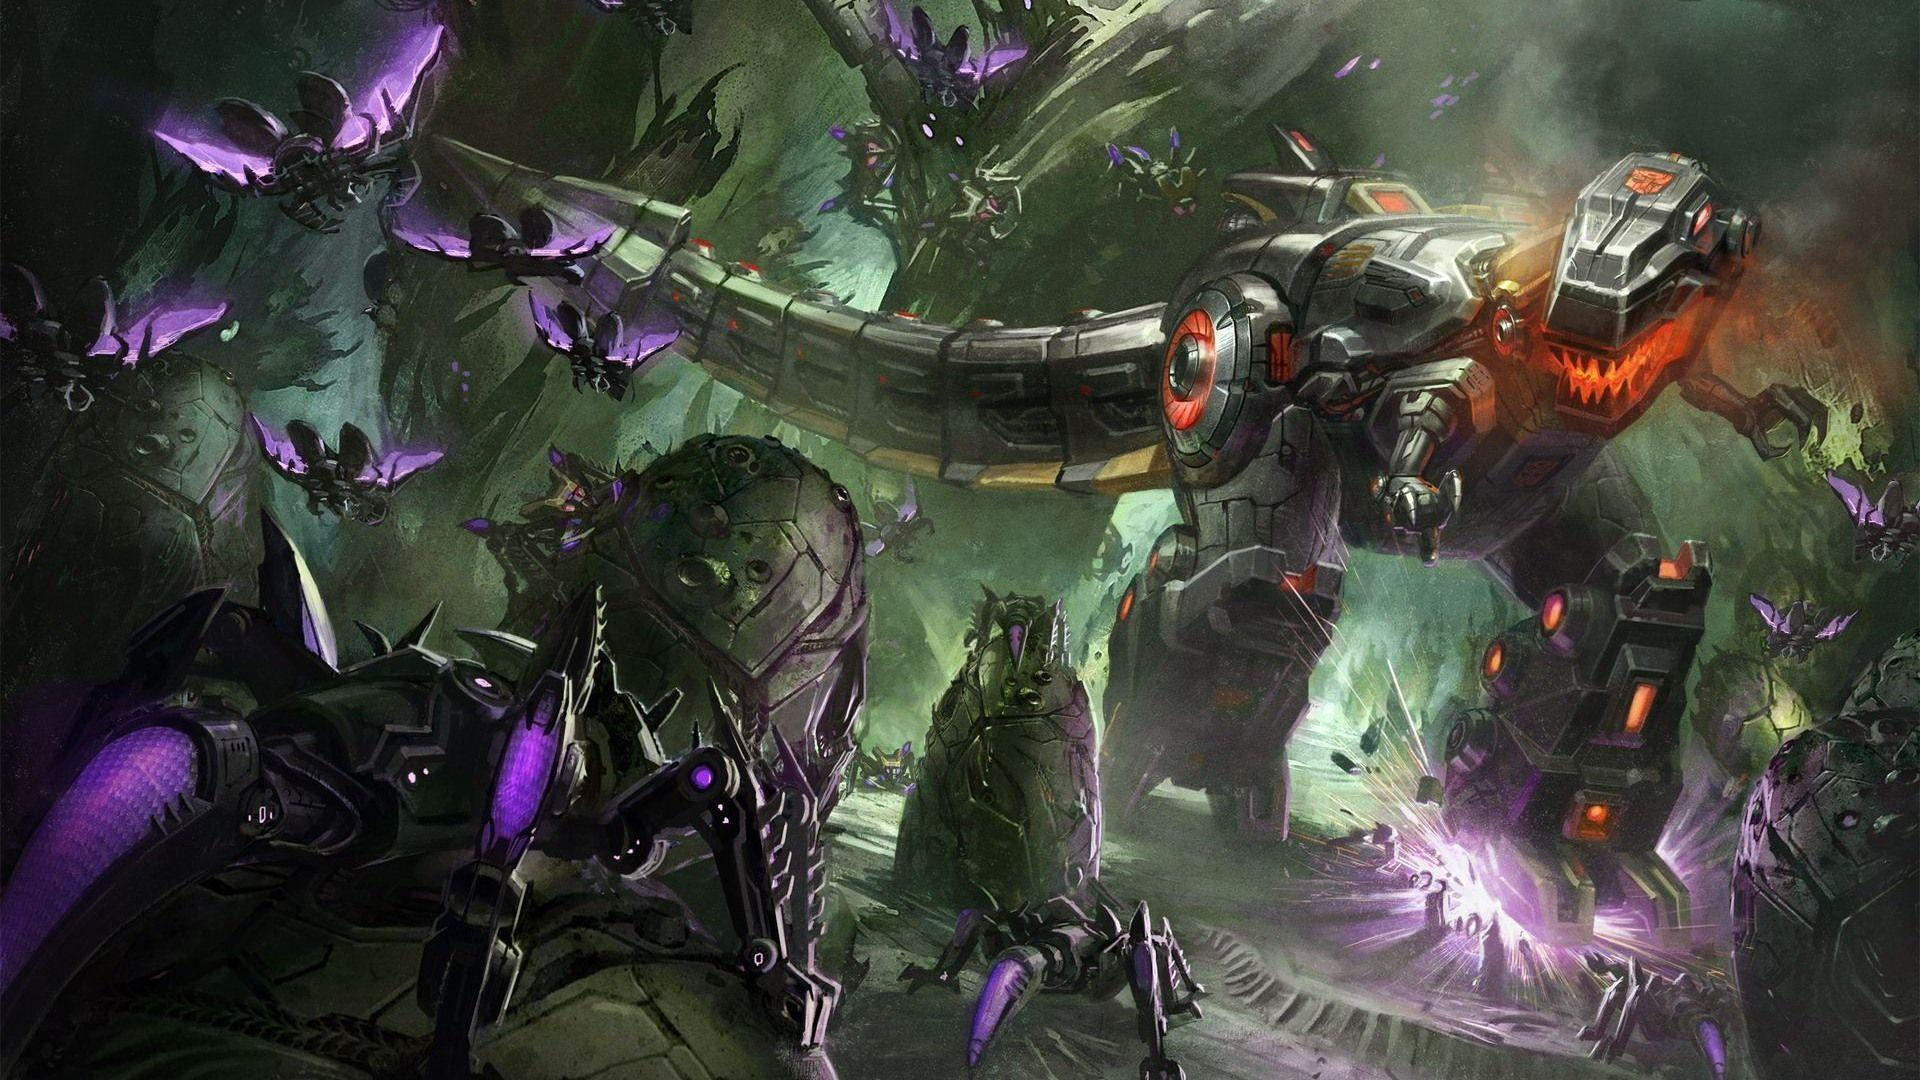 Fall Of Cybertron Wallpaper Hd Cybertron Wallpapers Wallpaper Cave